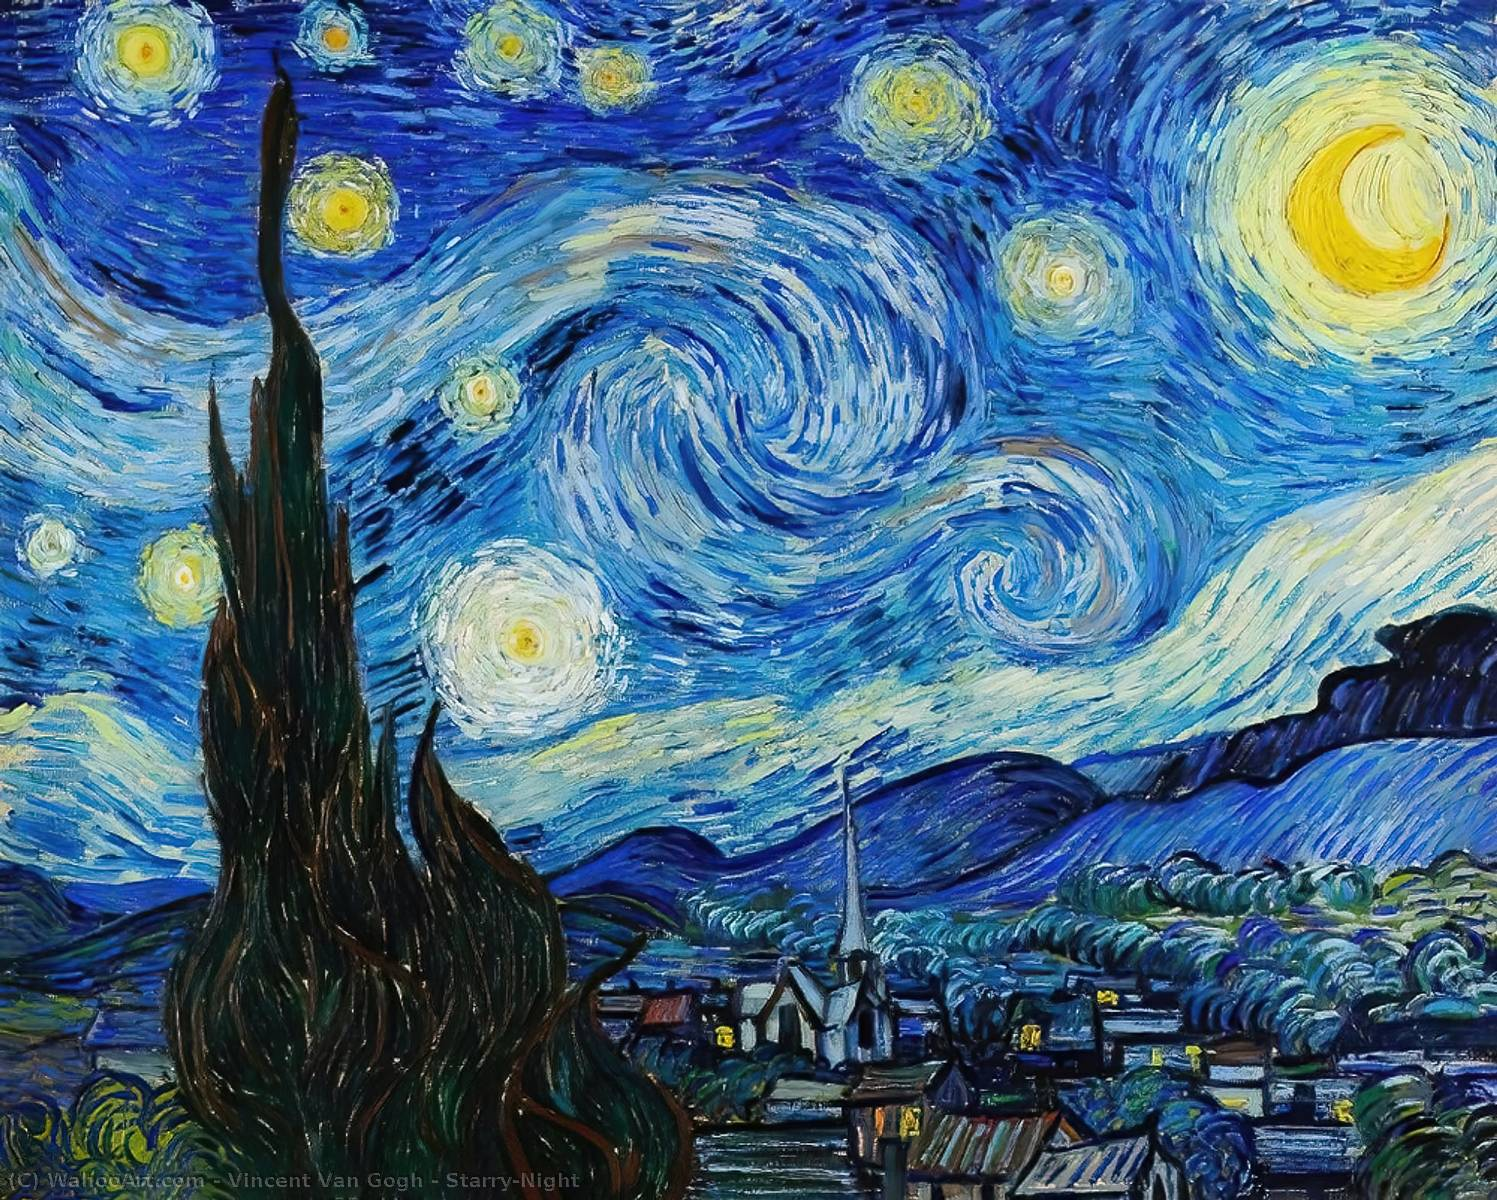 Starry-Night, 1889 by Vincent Van Gogh (1853-1890, Netherlands) | Reproductions Vincent Van Gogh | WahooArt.com